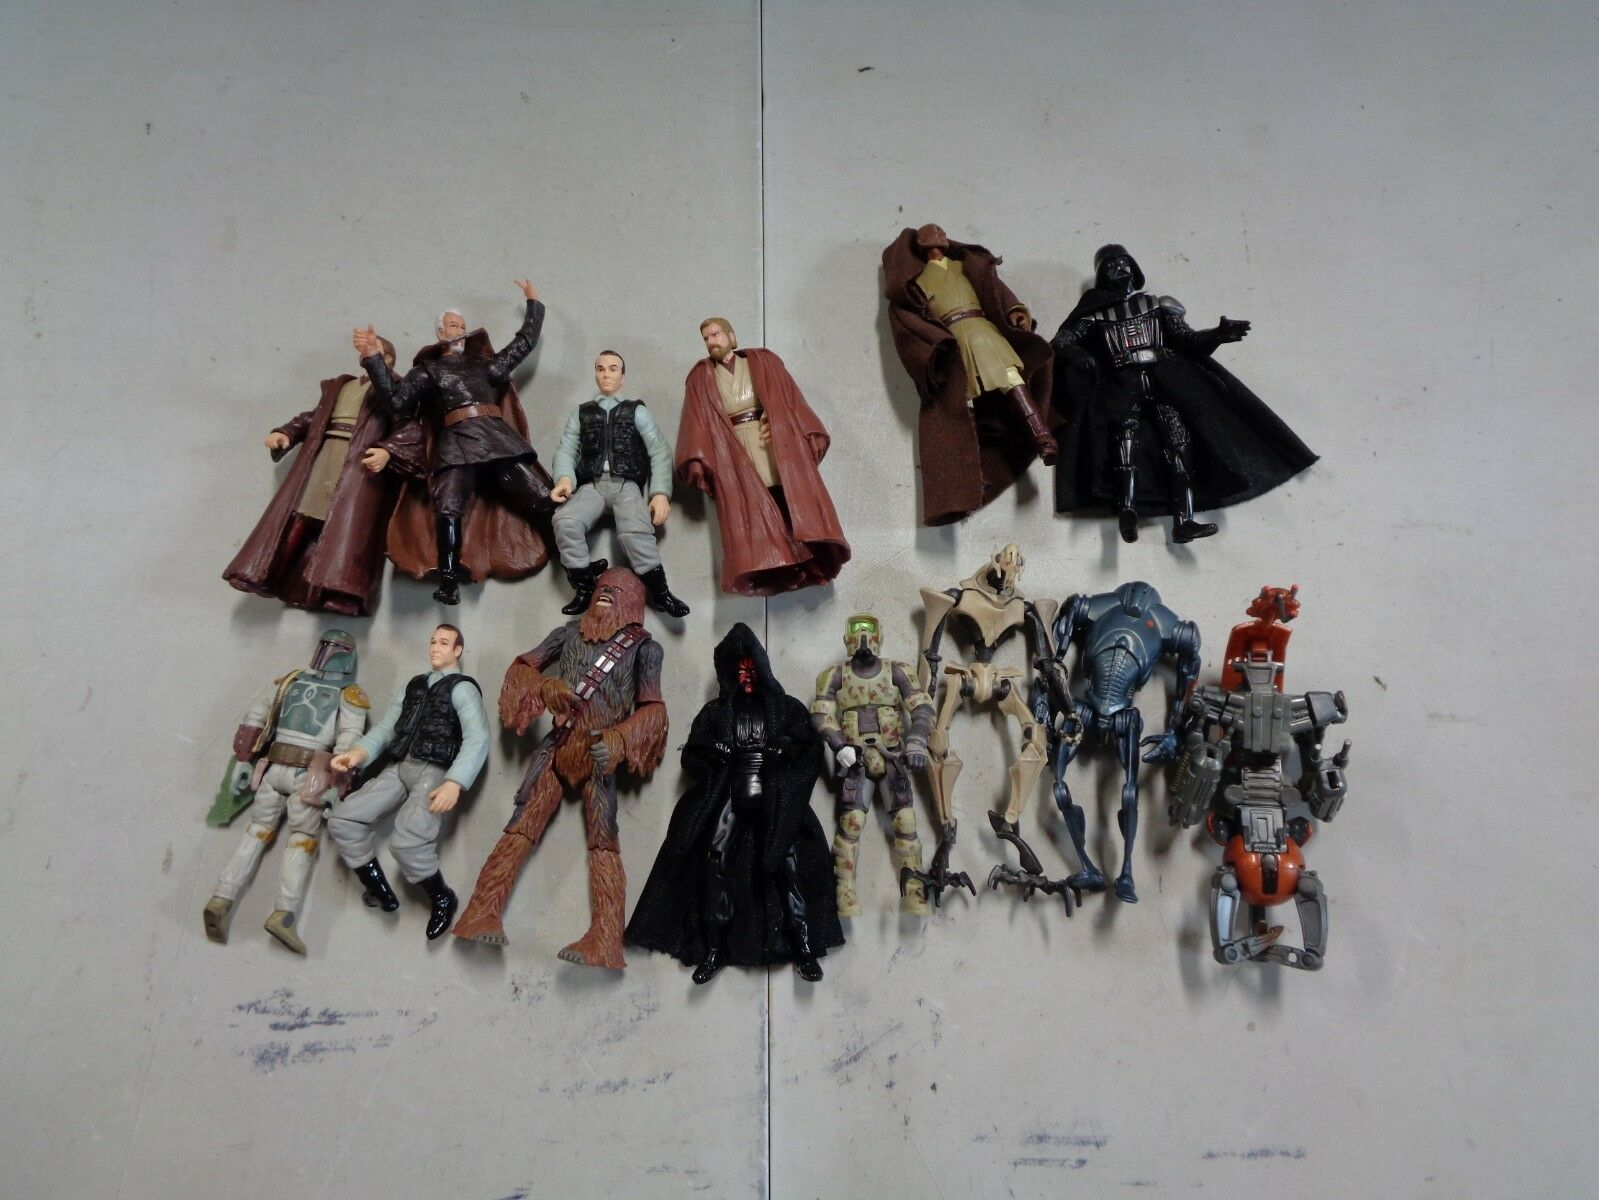 Lot of 14 Assorted Star Wars Figures with Chewbacca